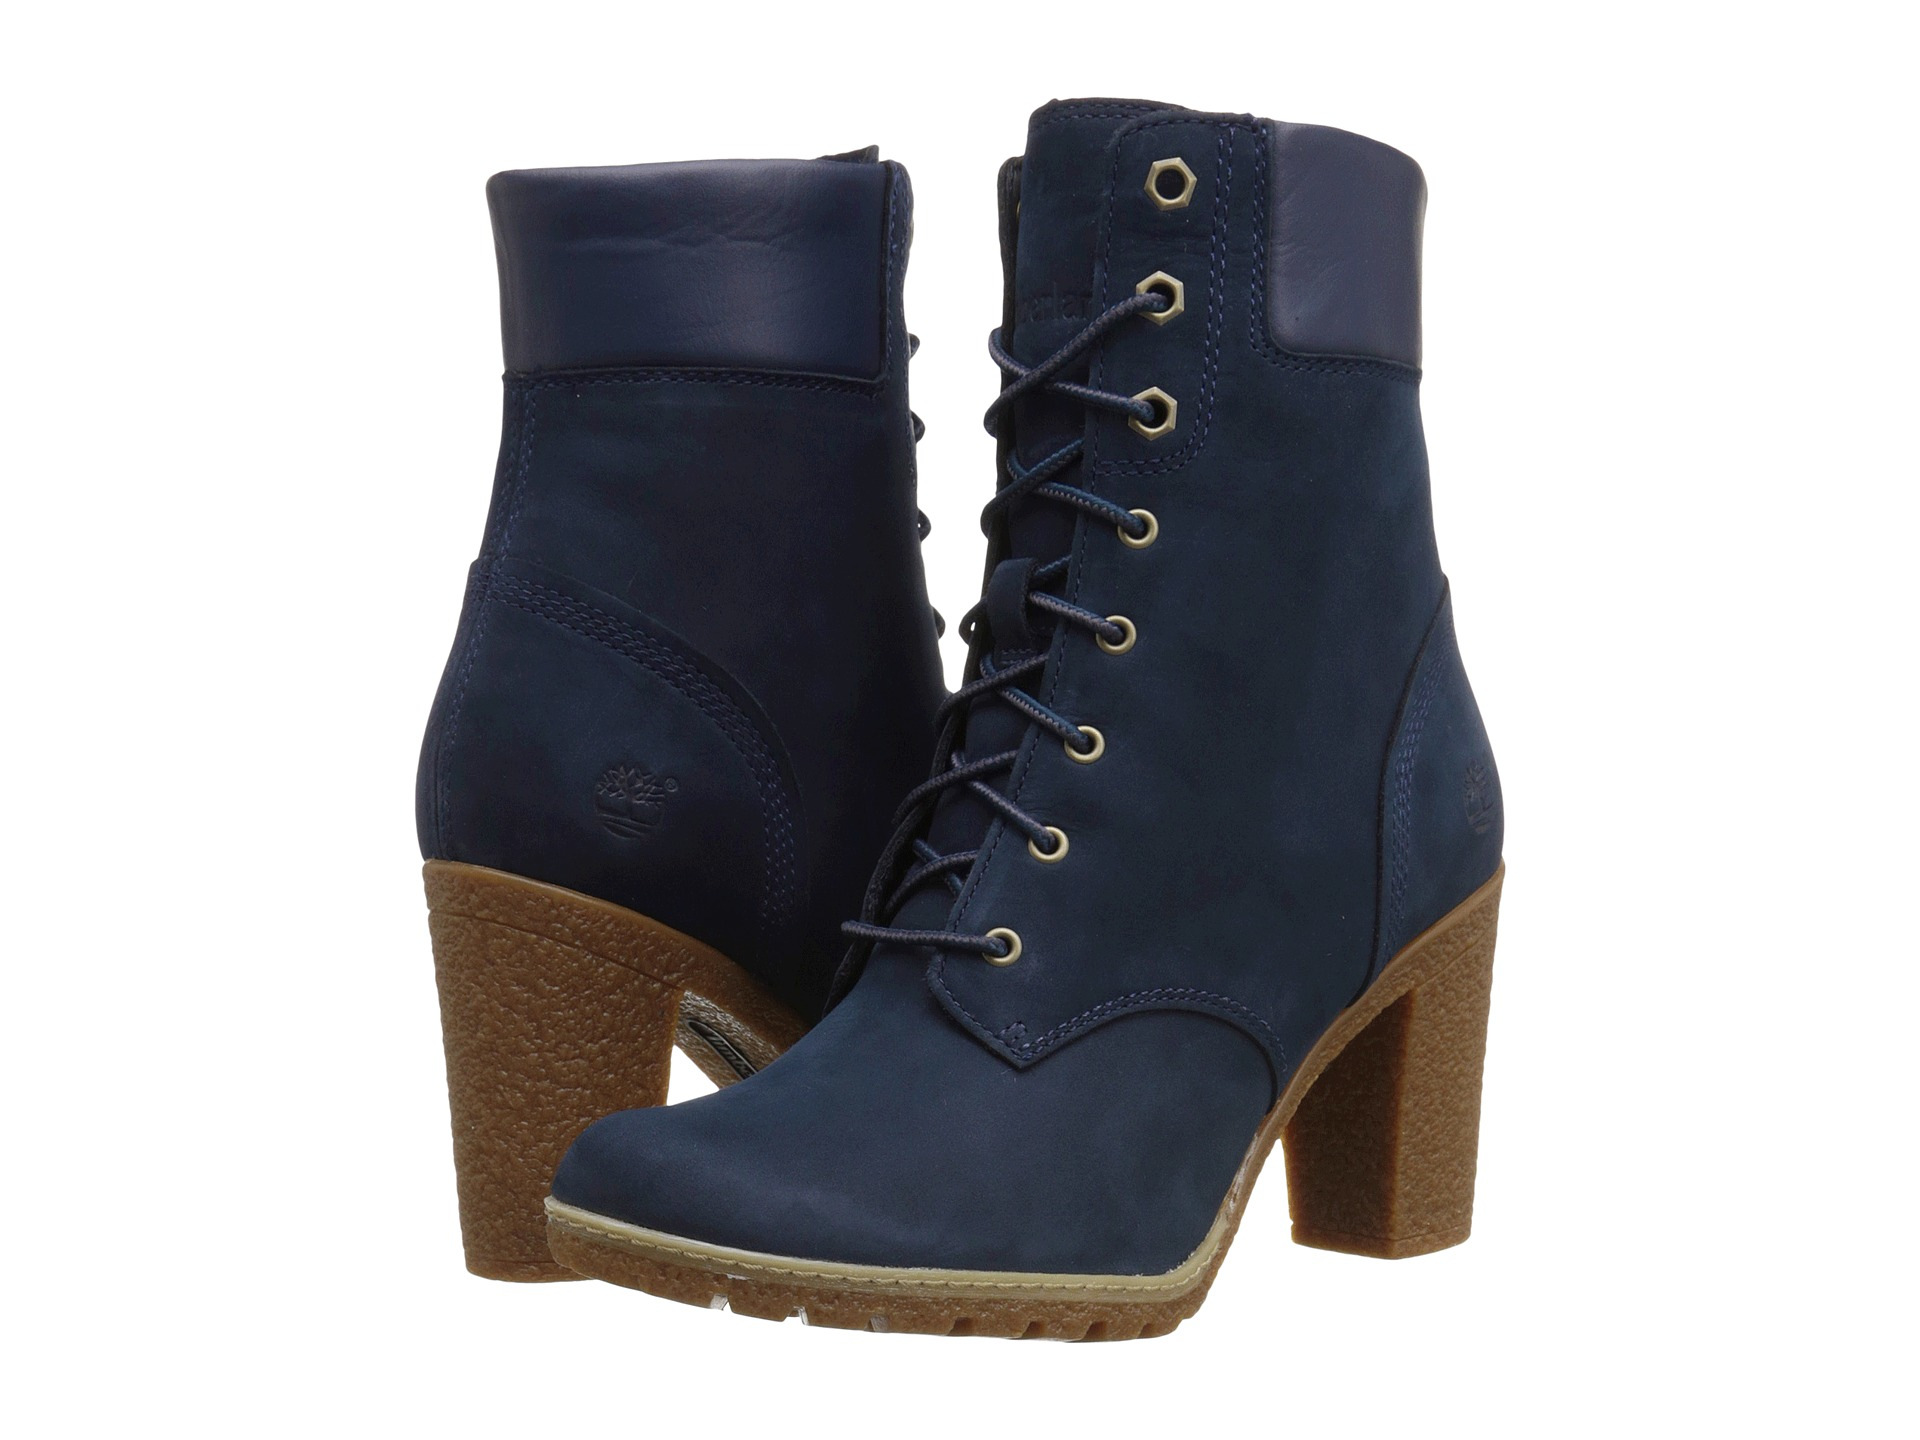 Luxury Navy Timberlands Boots | Europe!!! | Pinterest | Timberland And Navy